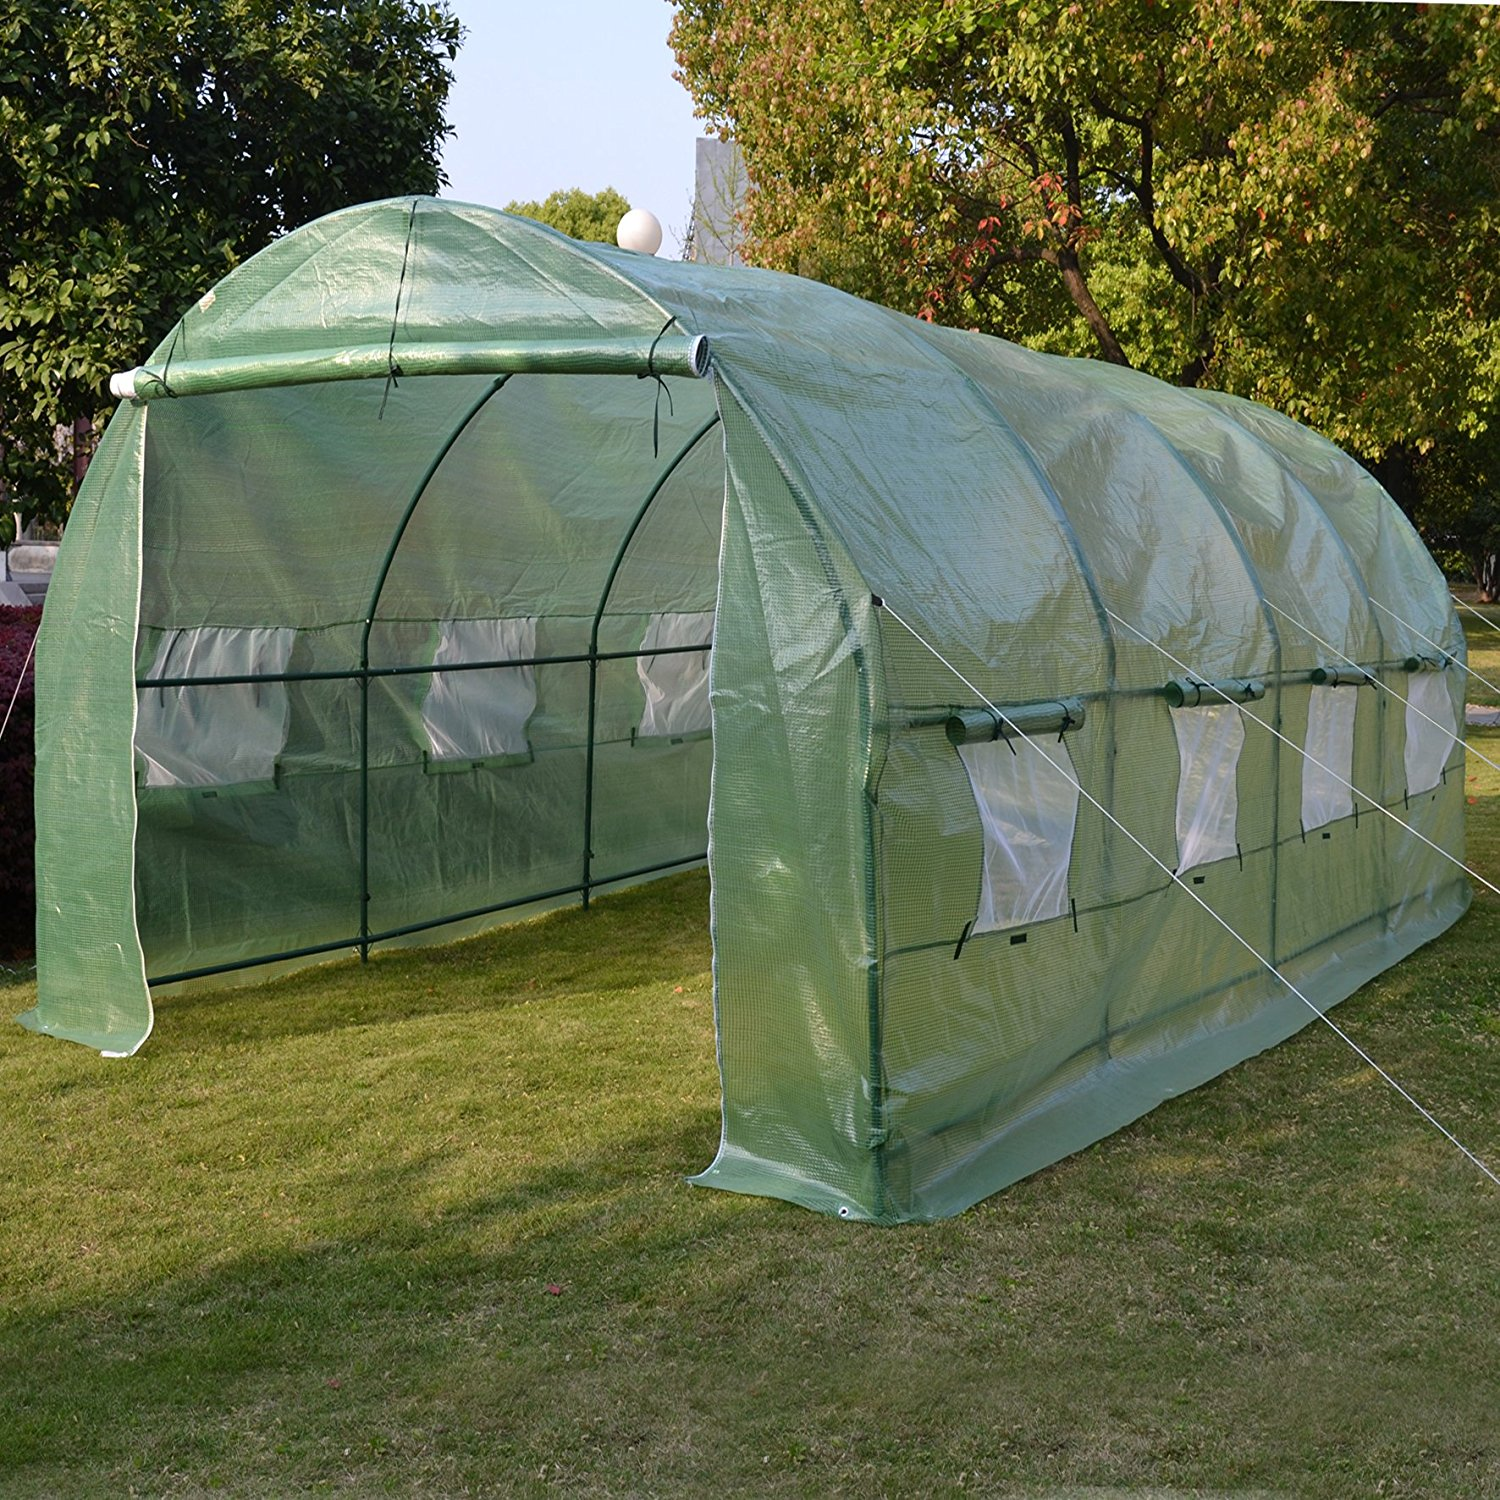 20'X10'X7' Walk-In Greenhouse Outdoor Plant Gardening Greenhouse by Supplier Generic